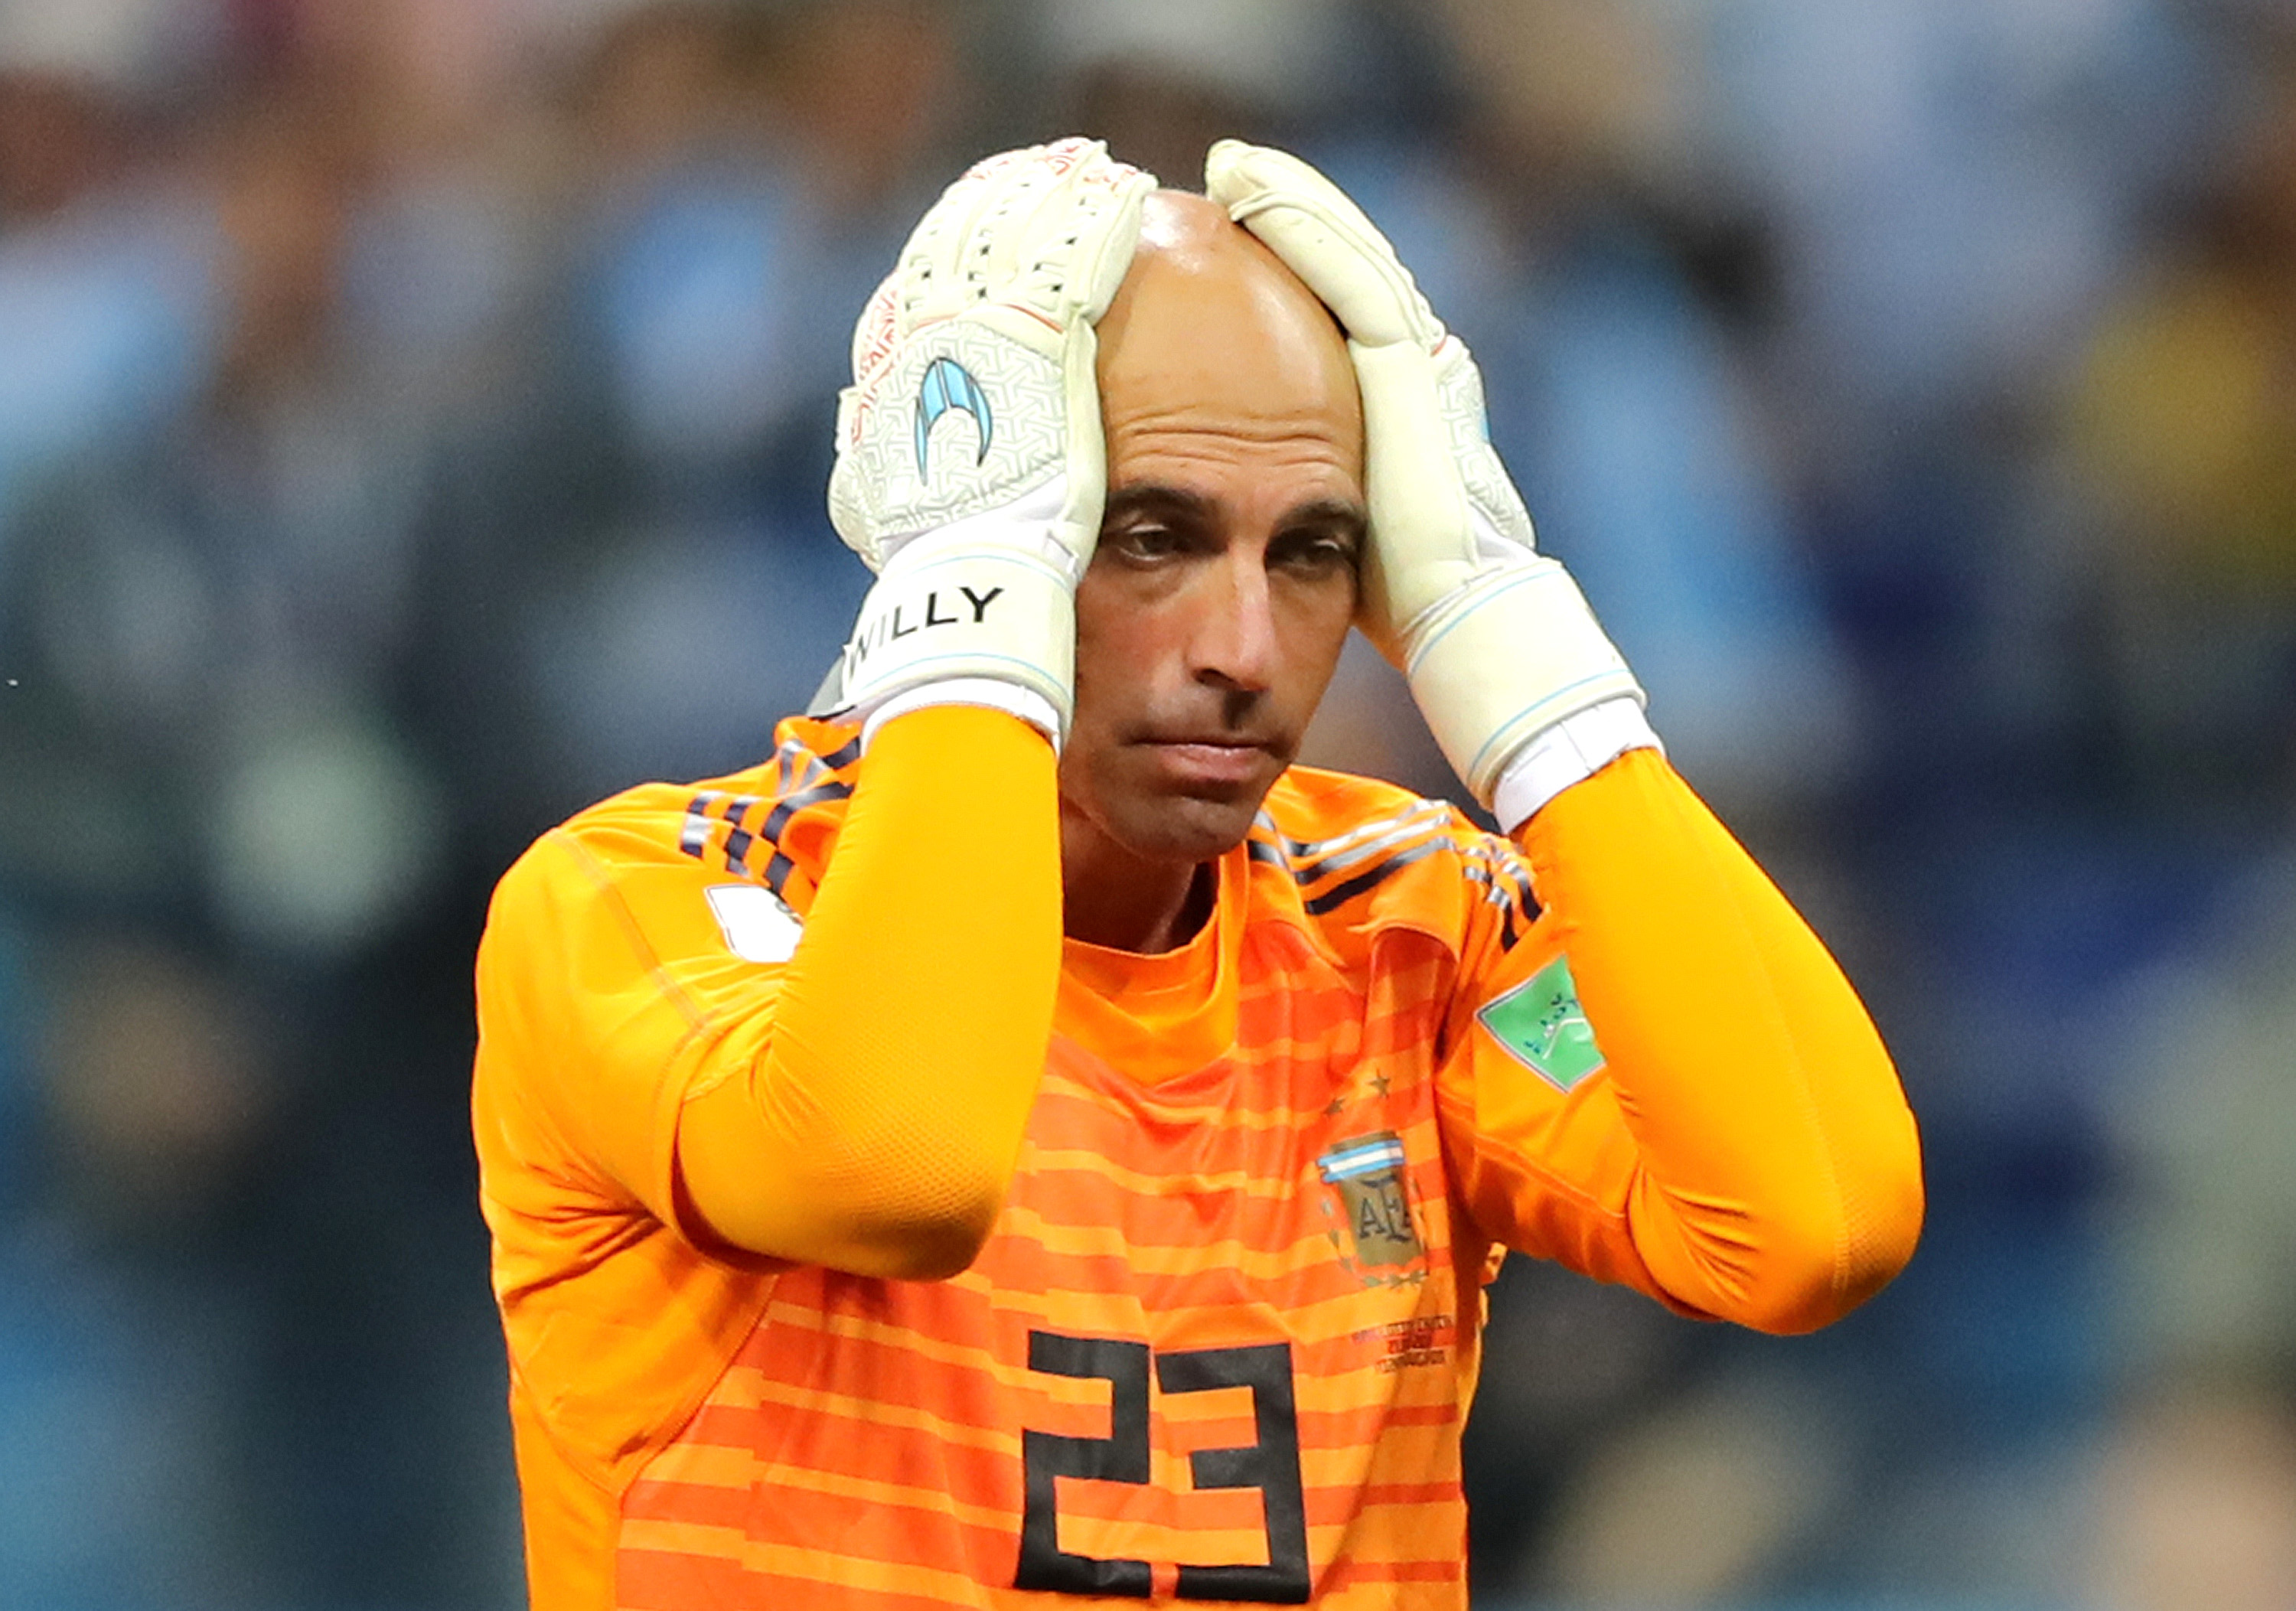 Willy Caballero se desahogó en Instagram